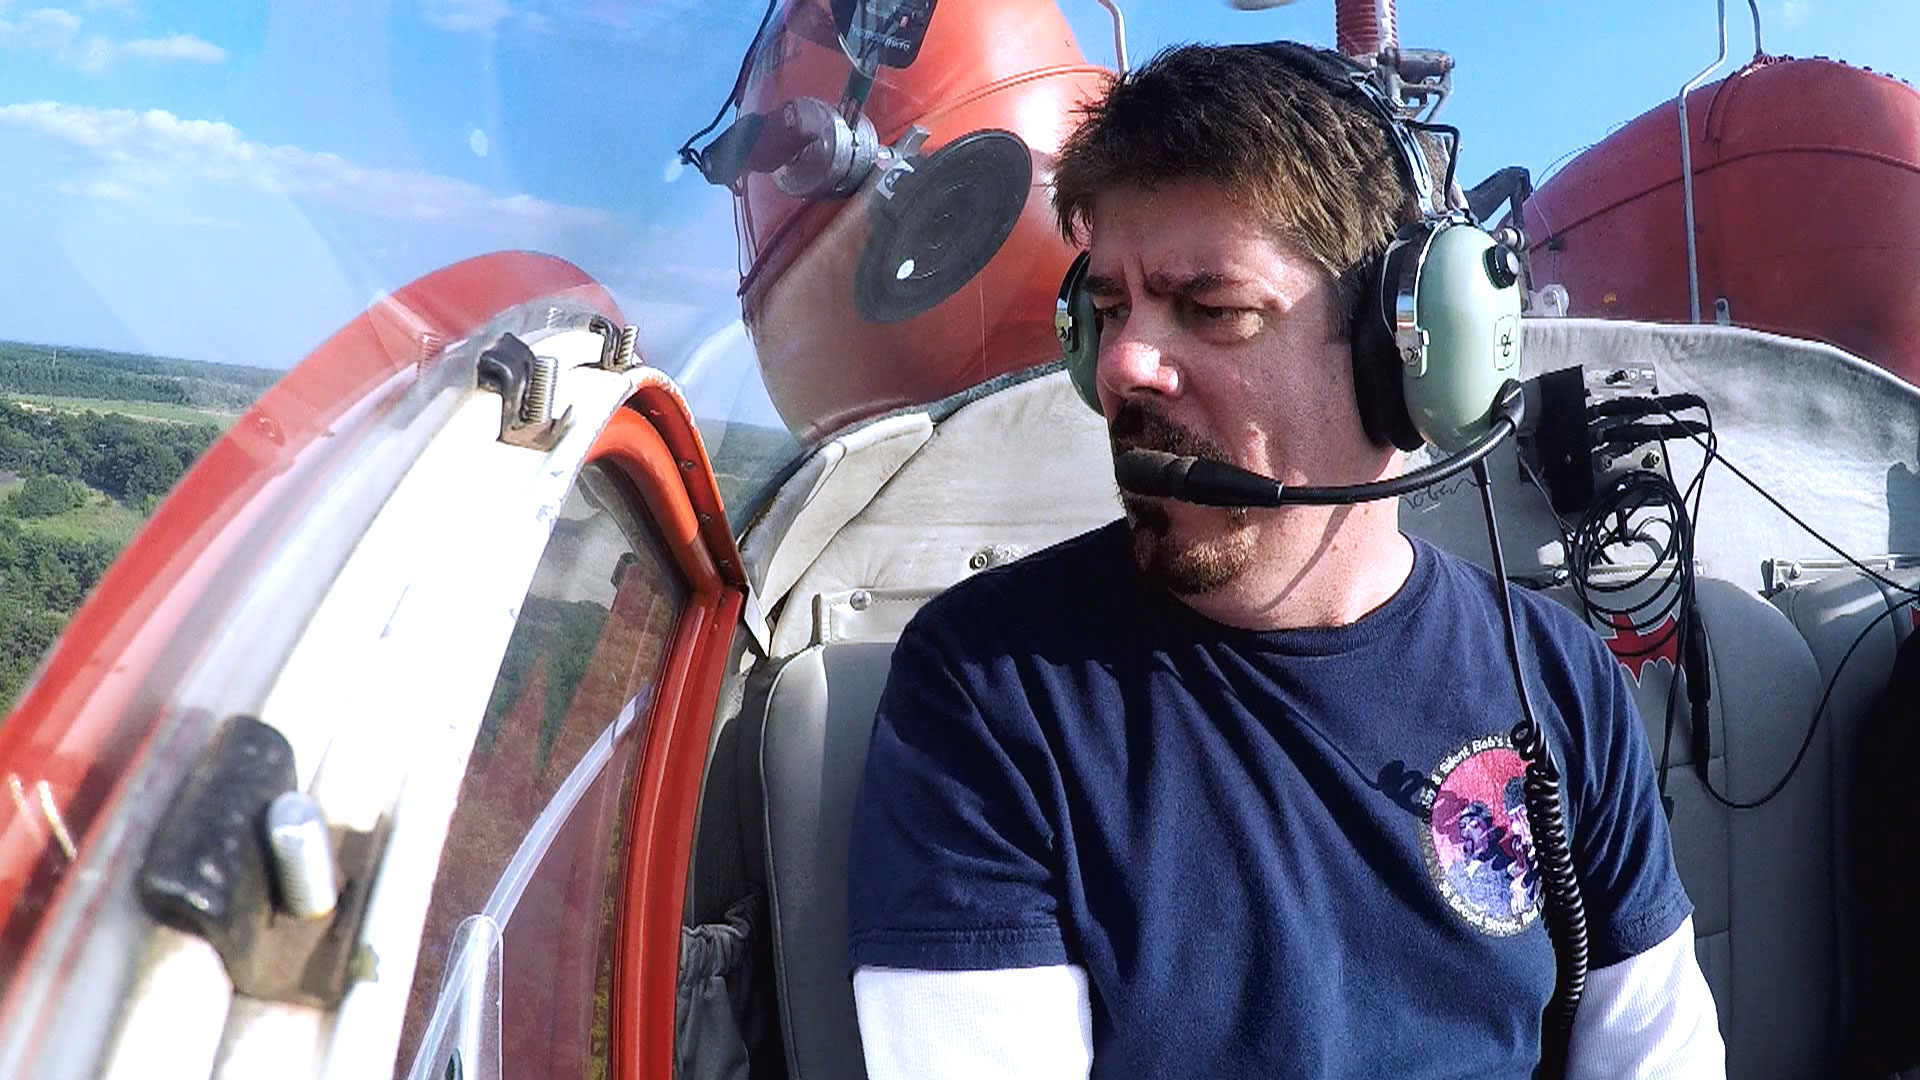 Our buddy MIke Zapcic in the Batcopter